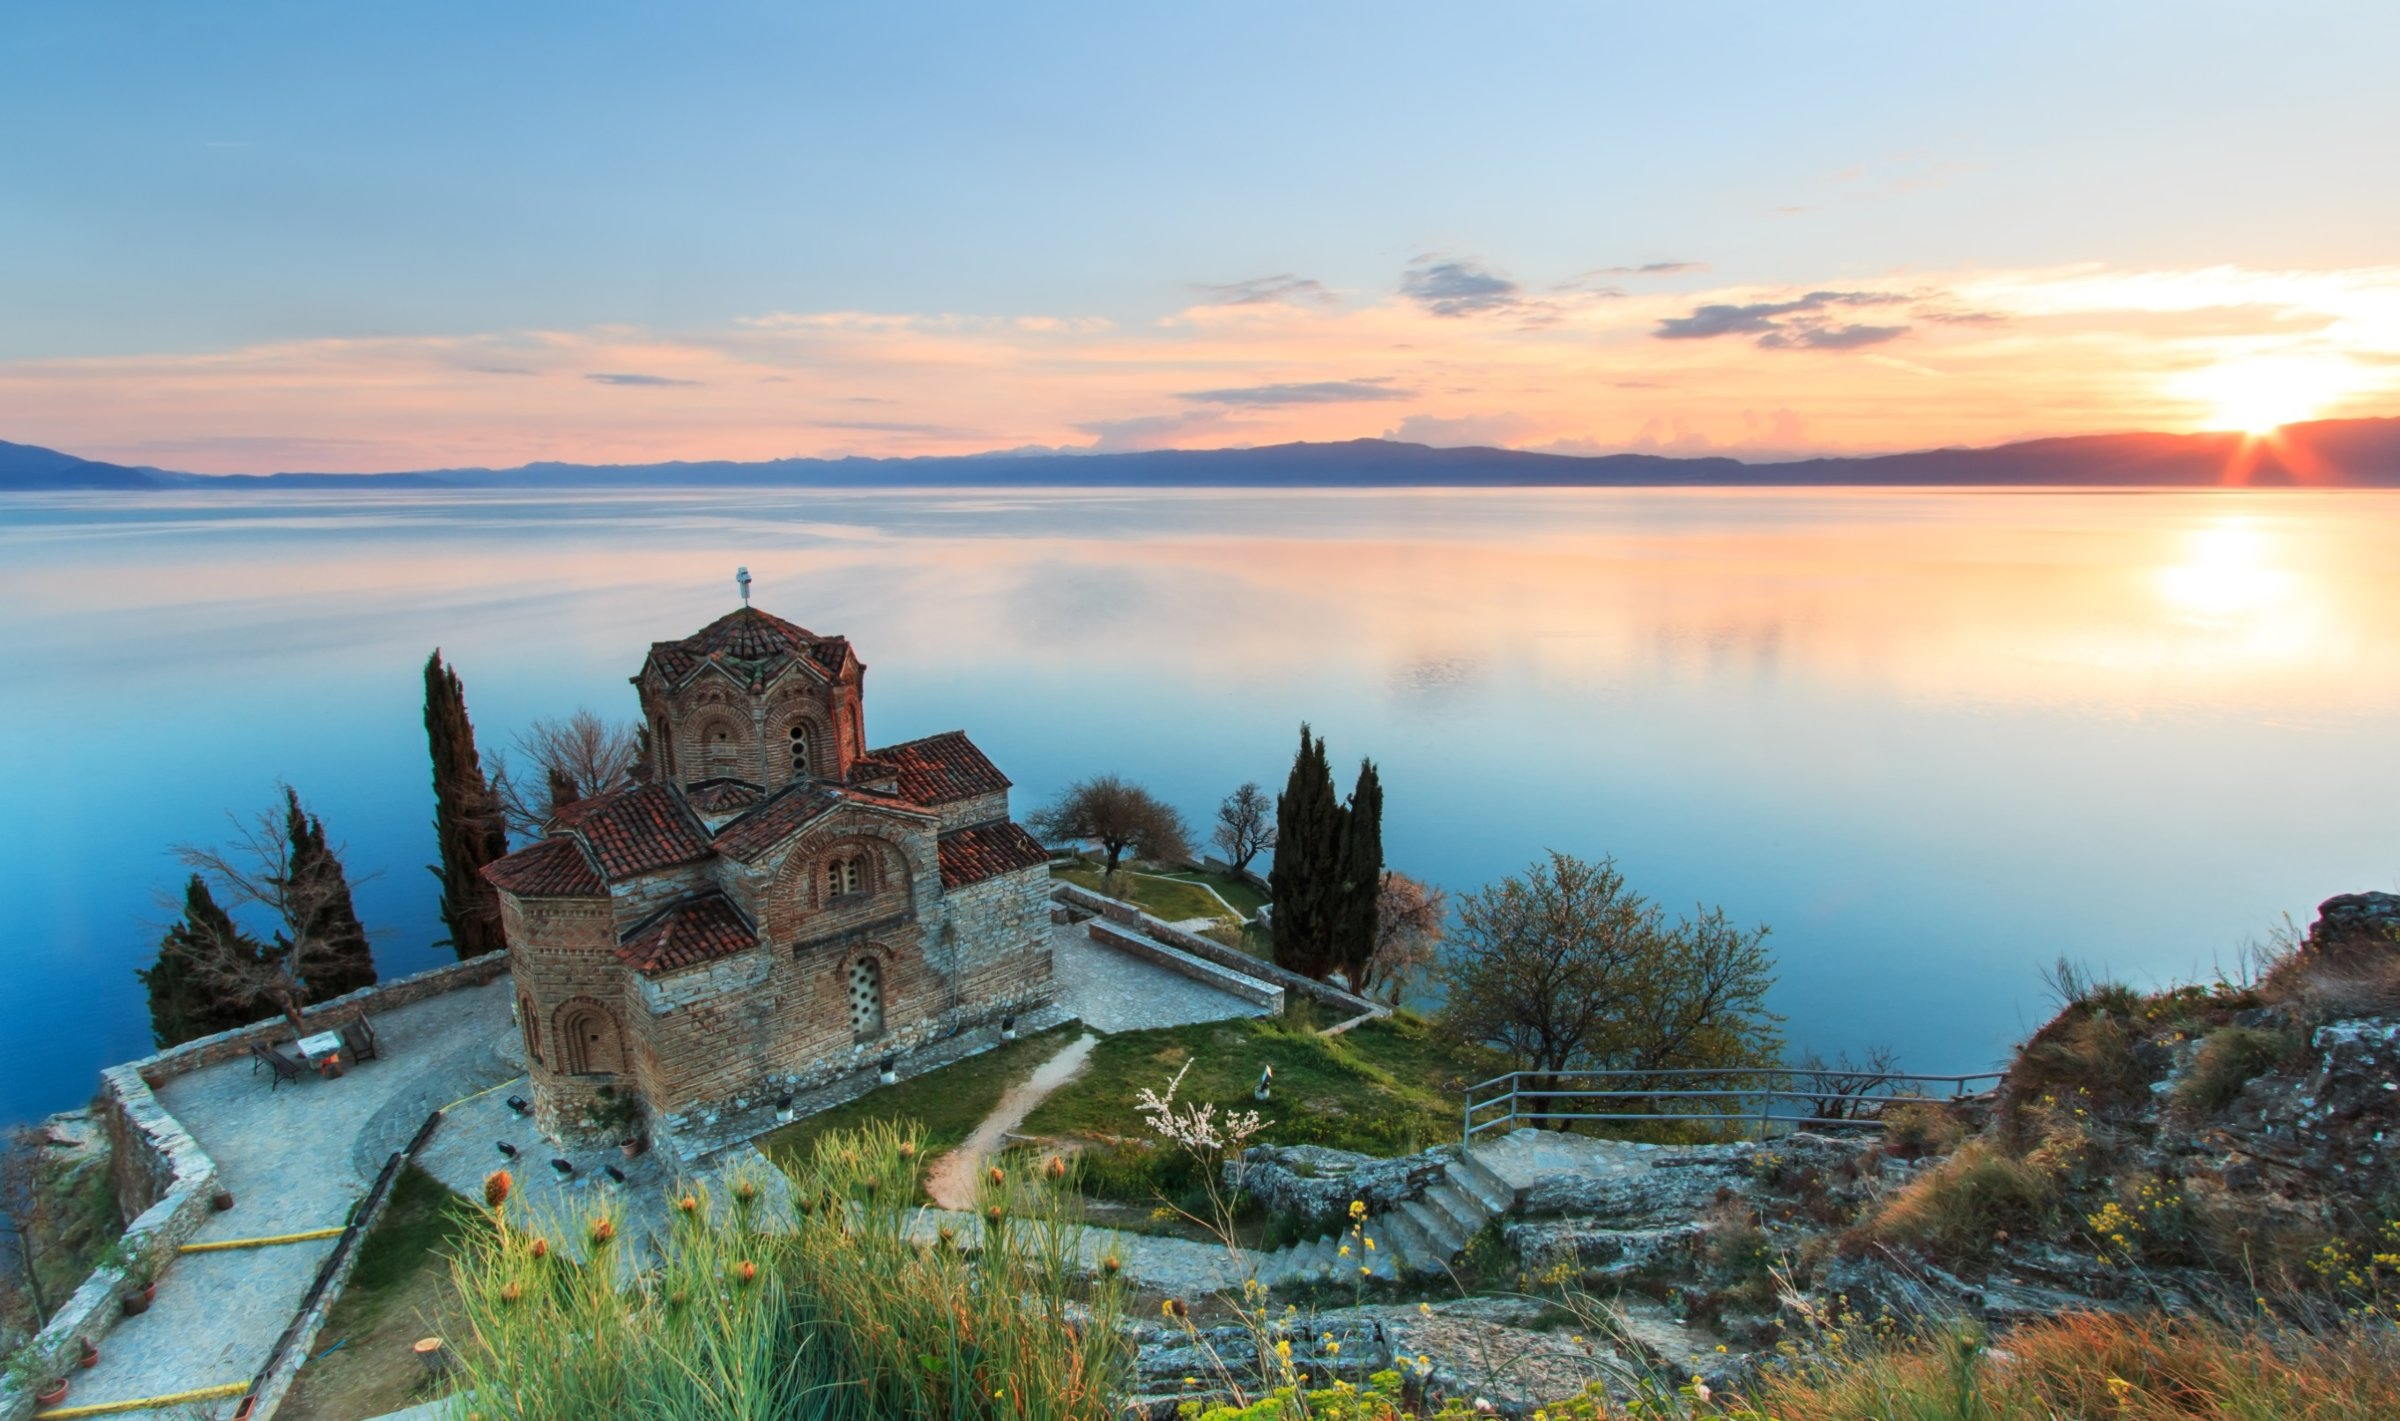 15-Day Best of the Balkans - Macedonia (FYROM) and Albania Itinerary